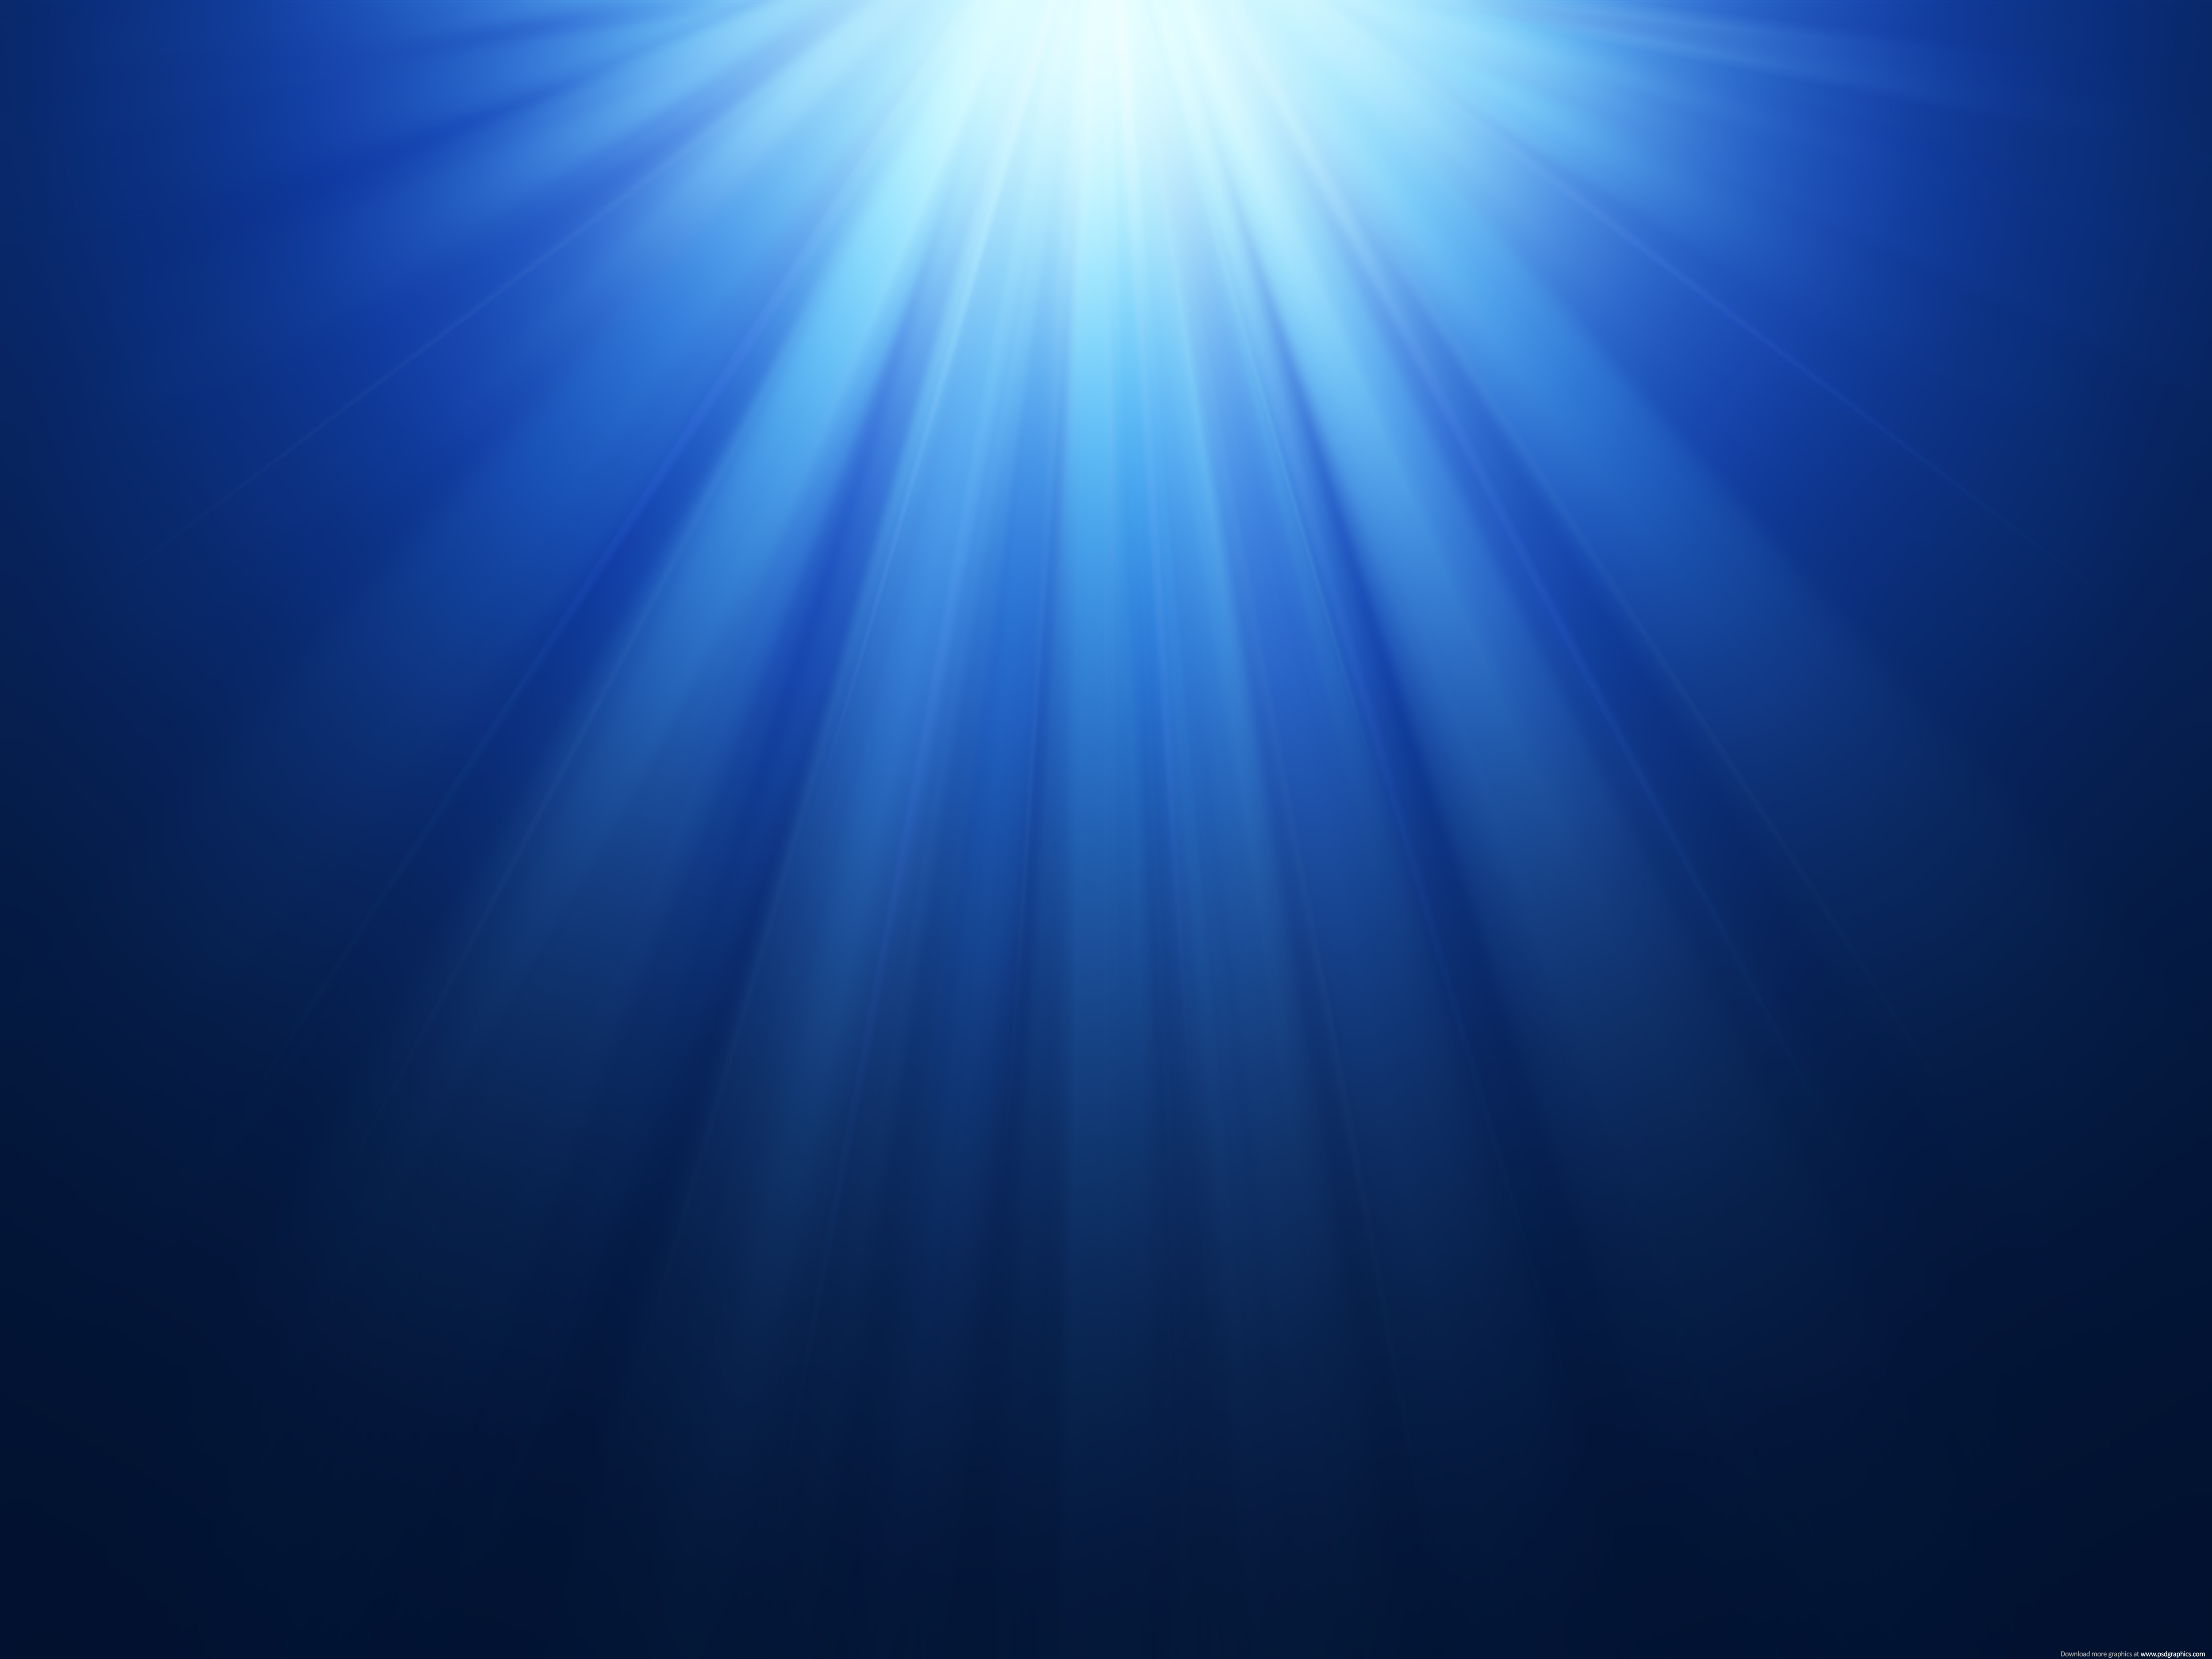 Beautiful blue rays background Web Design 5000x3750